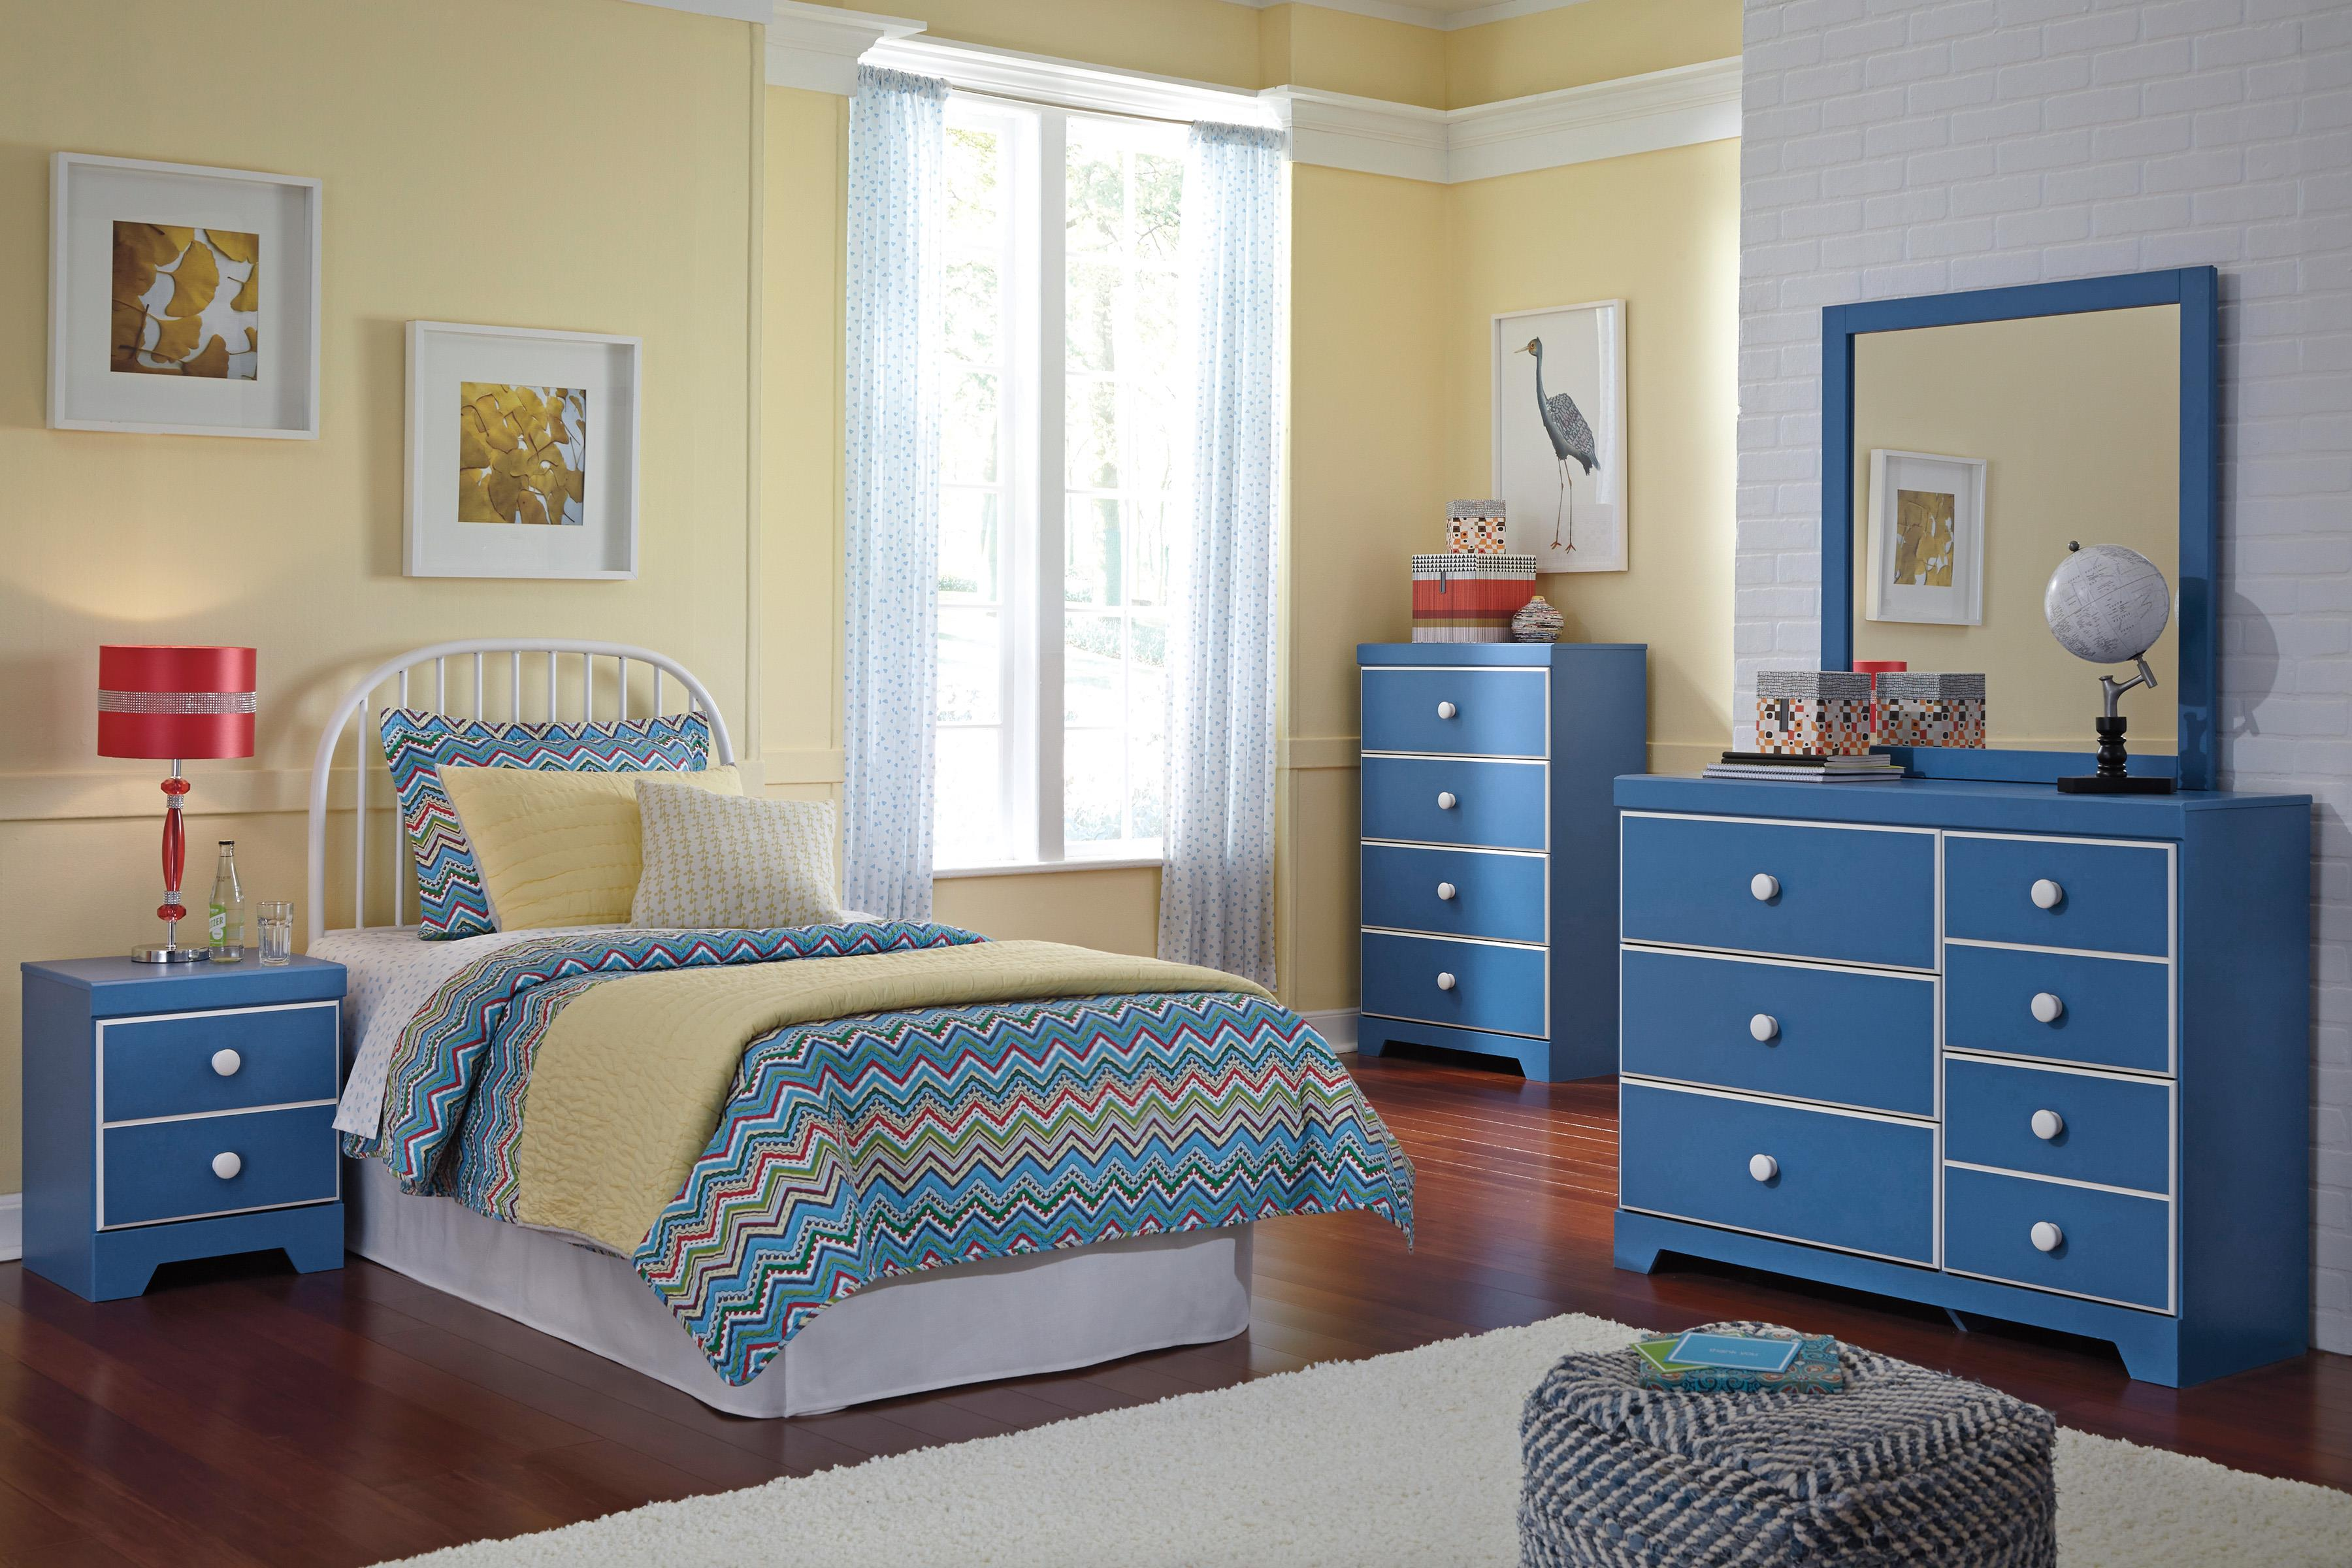 Signature Design by Ashley Bronilly Twin Bedroom Group - Item Number: B045 T Bedroom Group 4